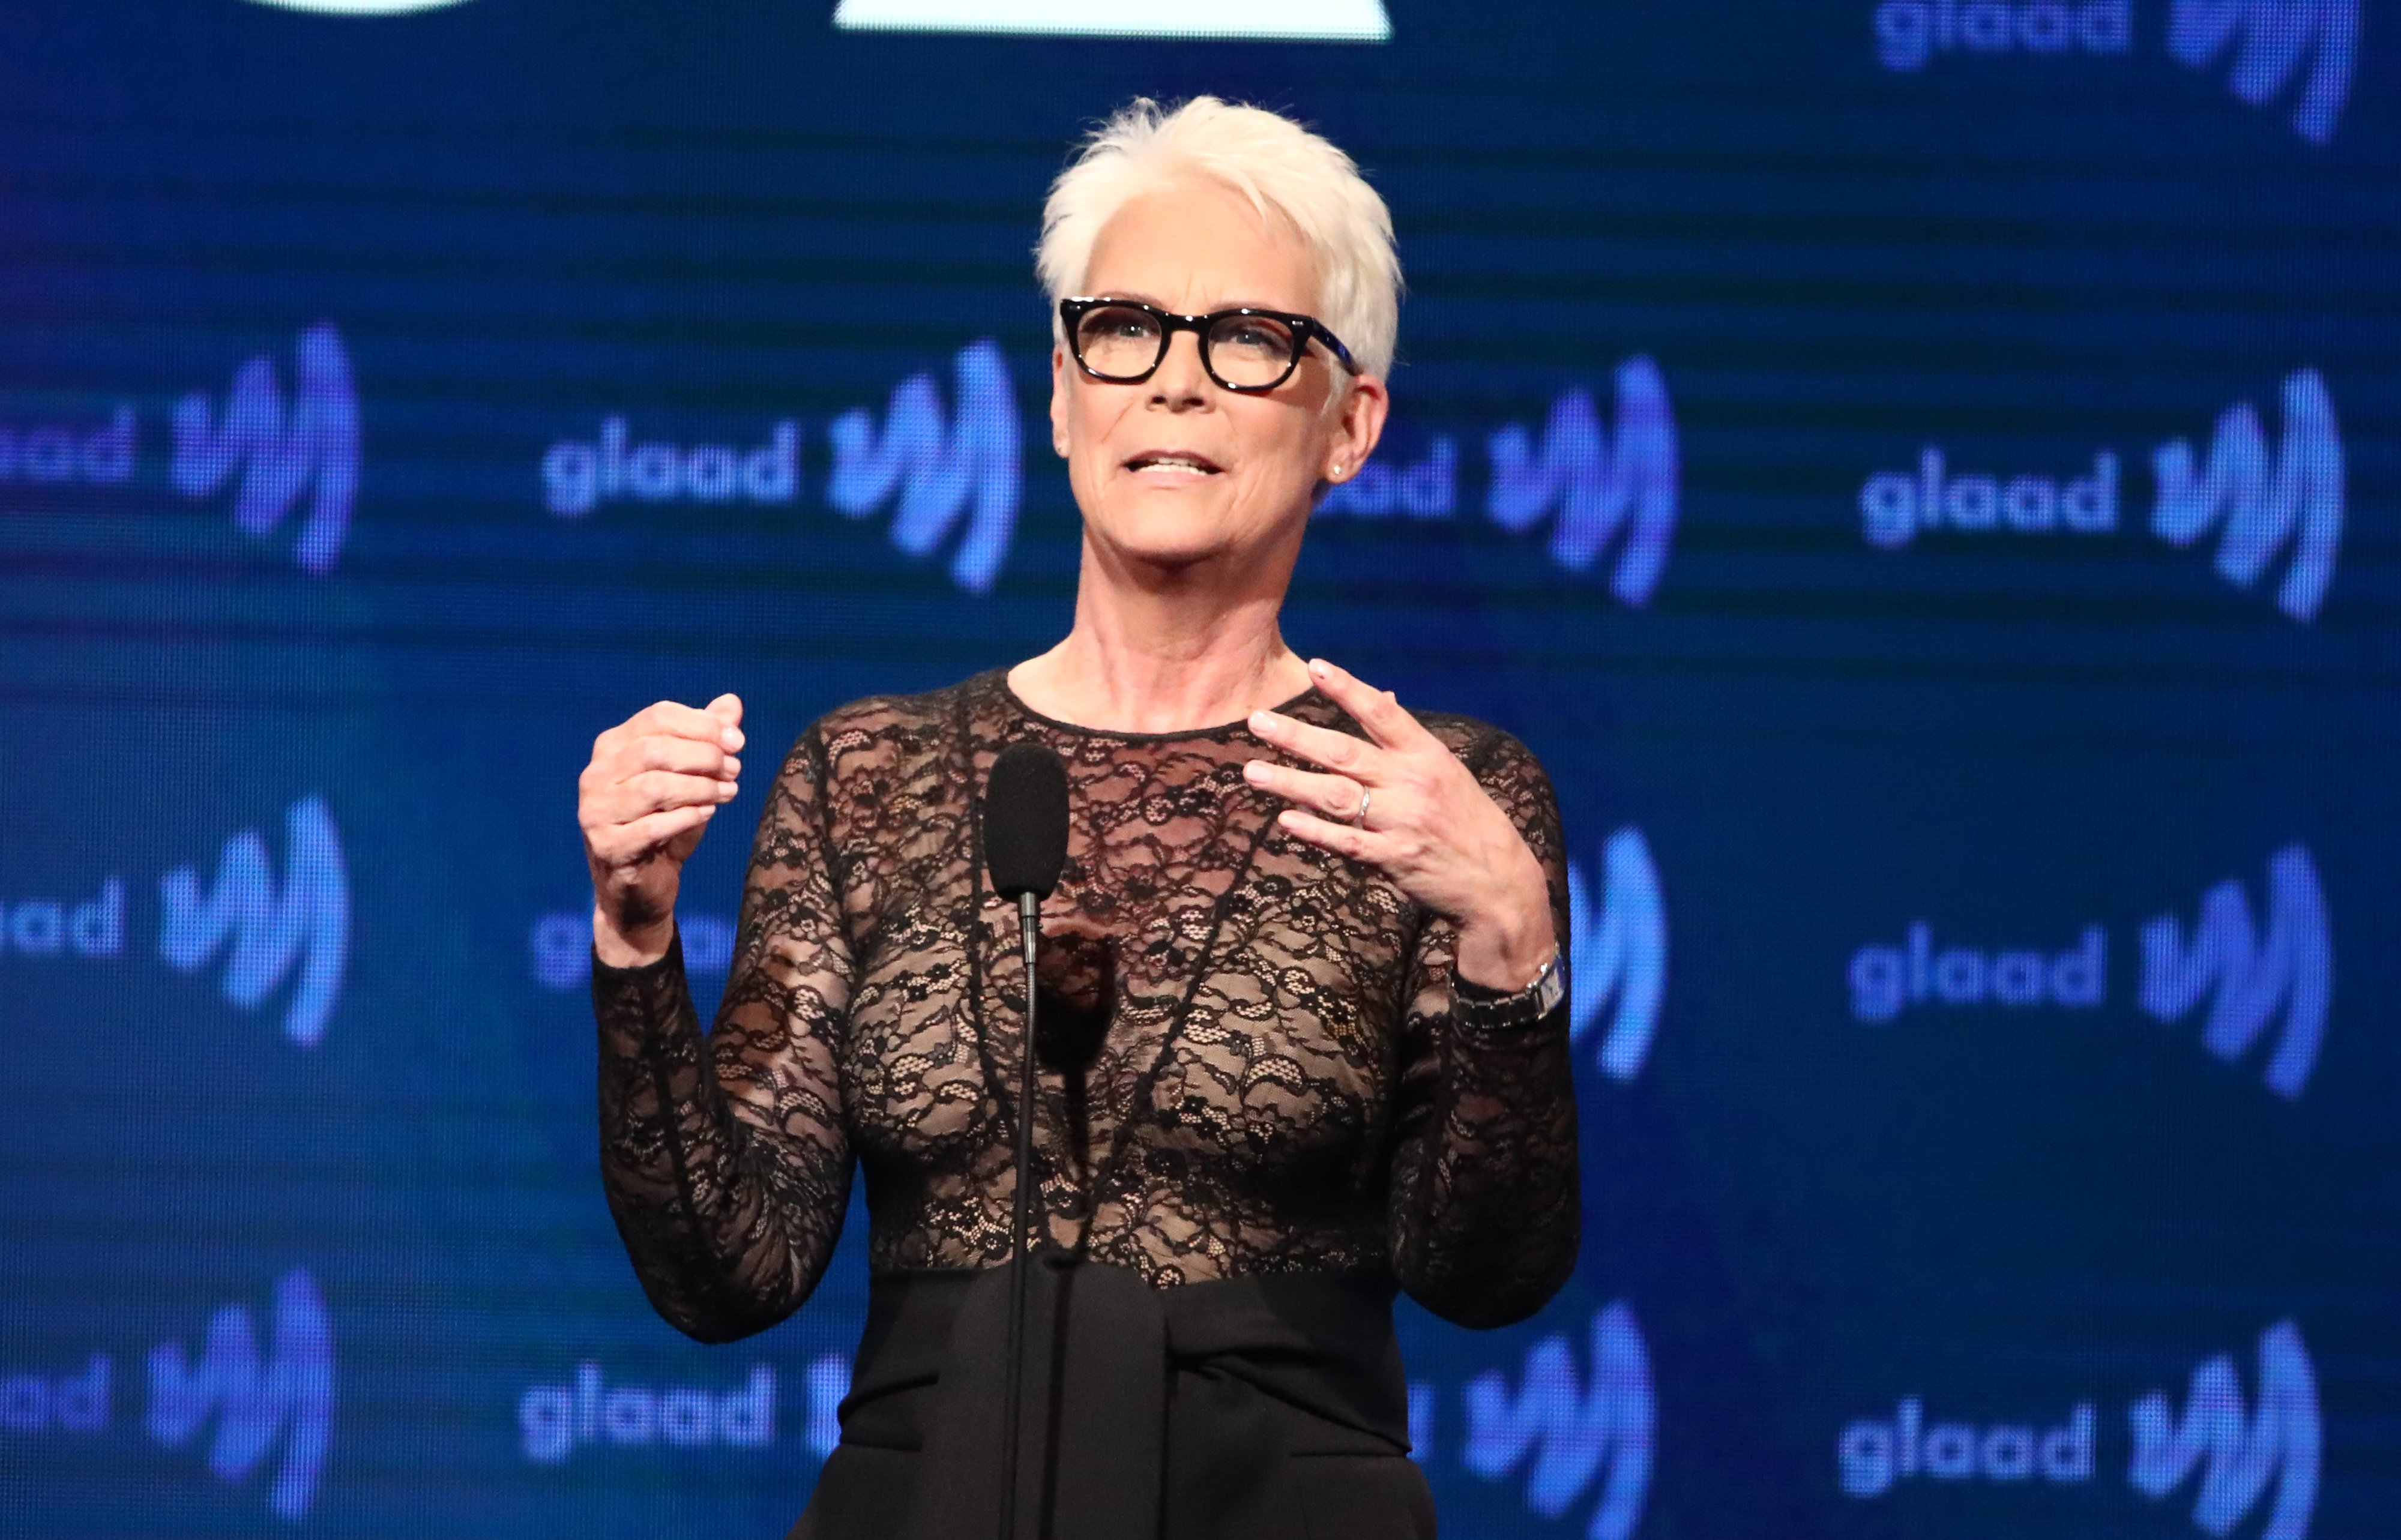 Jamie Lee Curtis speaks onstage during the 30th Annual GLAAD Media Awards Los Angeles at The Beverly Hilton Hotel on March 28, 2019. | Photo: Getty Images